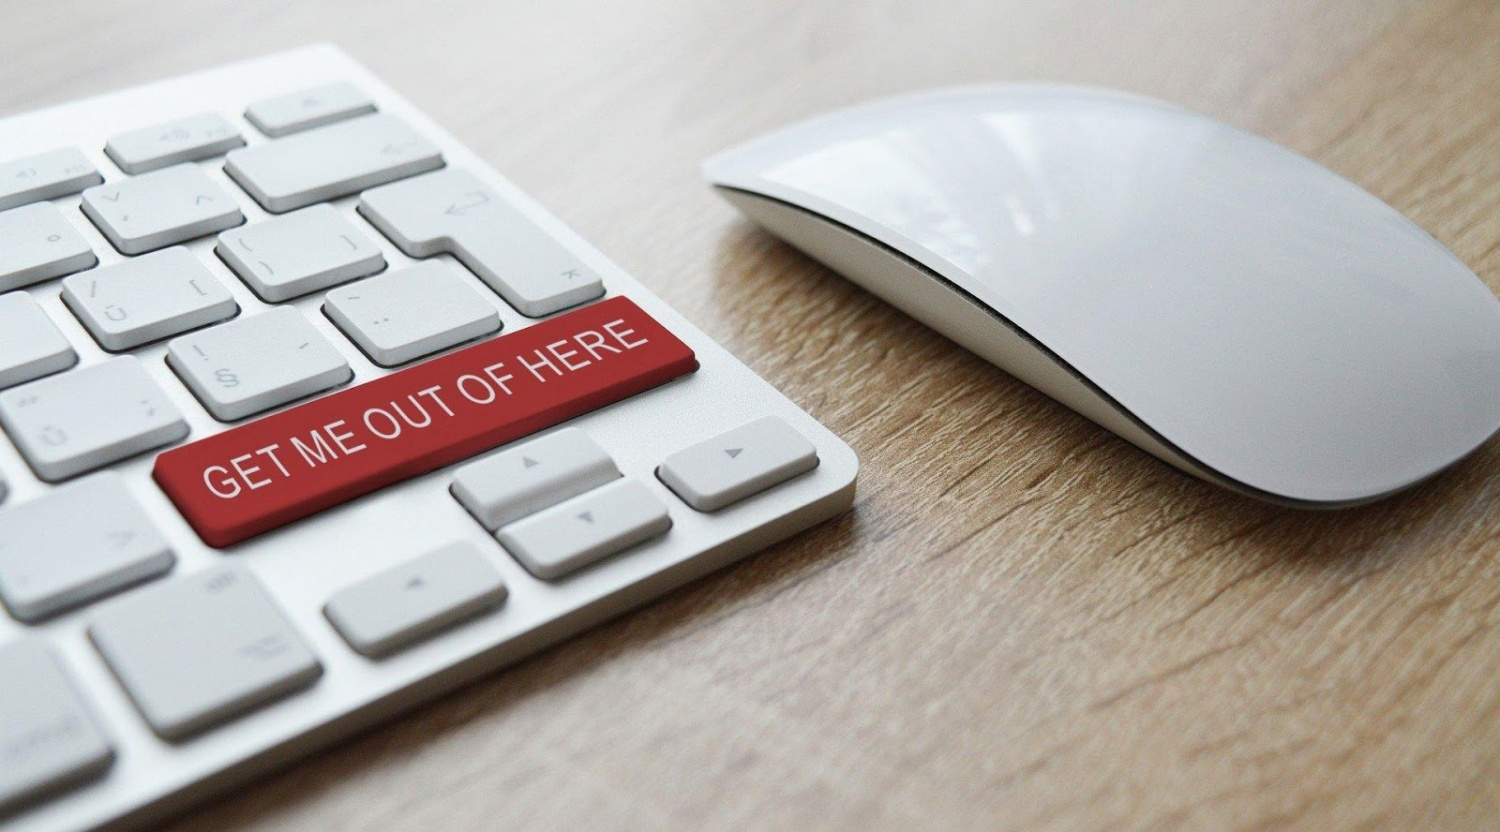 3 Ways You Can Frustrate the Average Cybercriminal